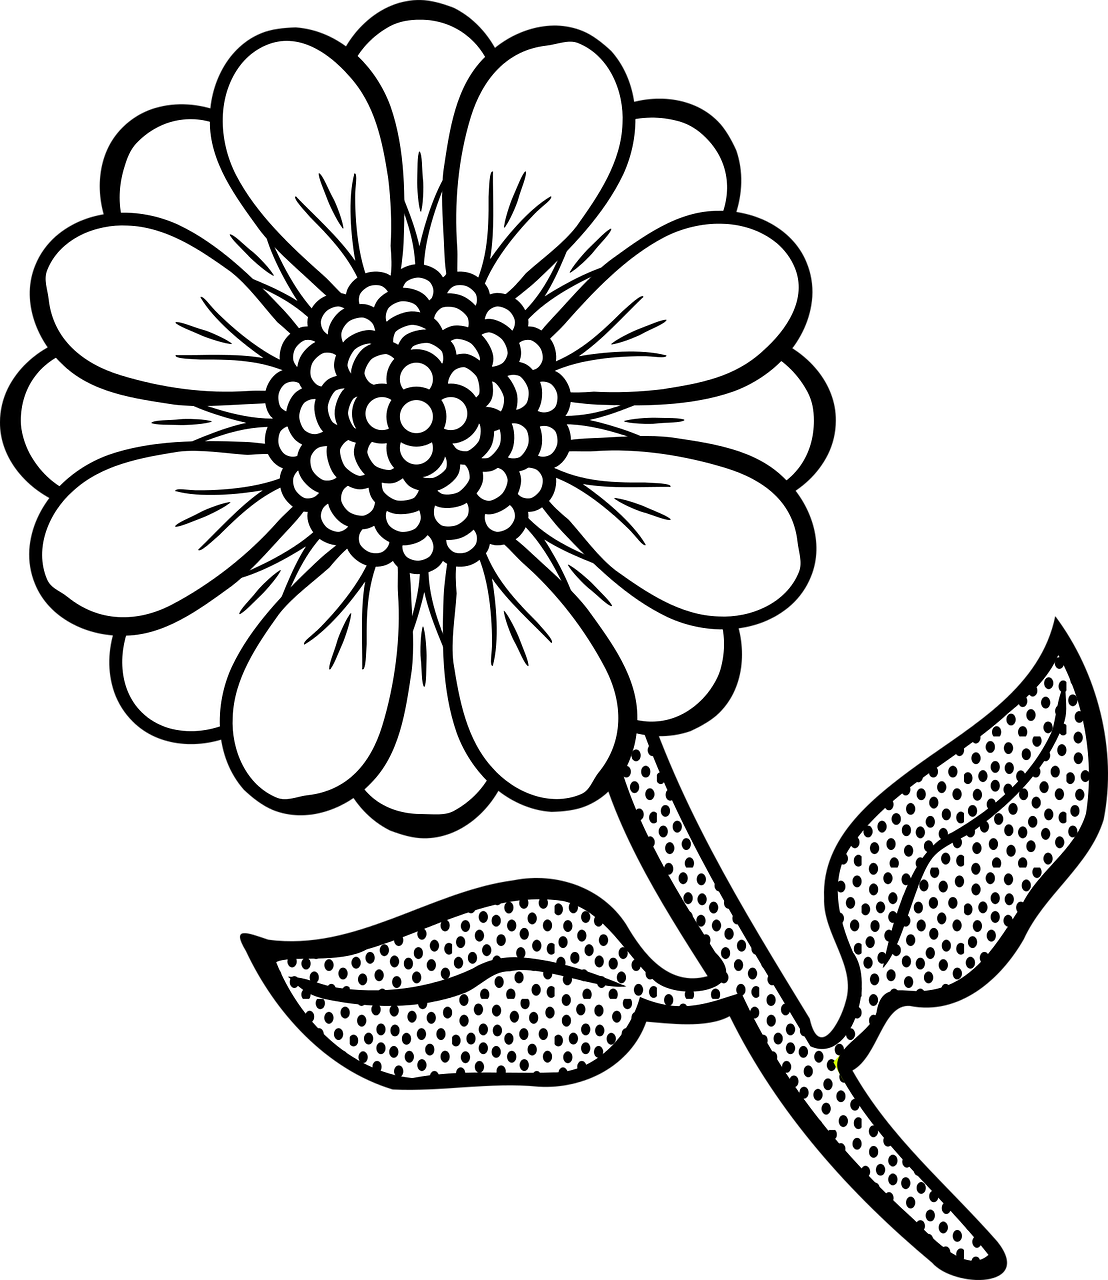 printable simple flower coloring pages free printable flower coloring pages 16 pics how to simple pages printable coloring flower